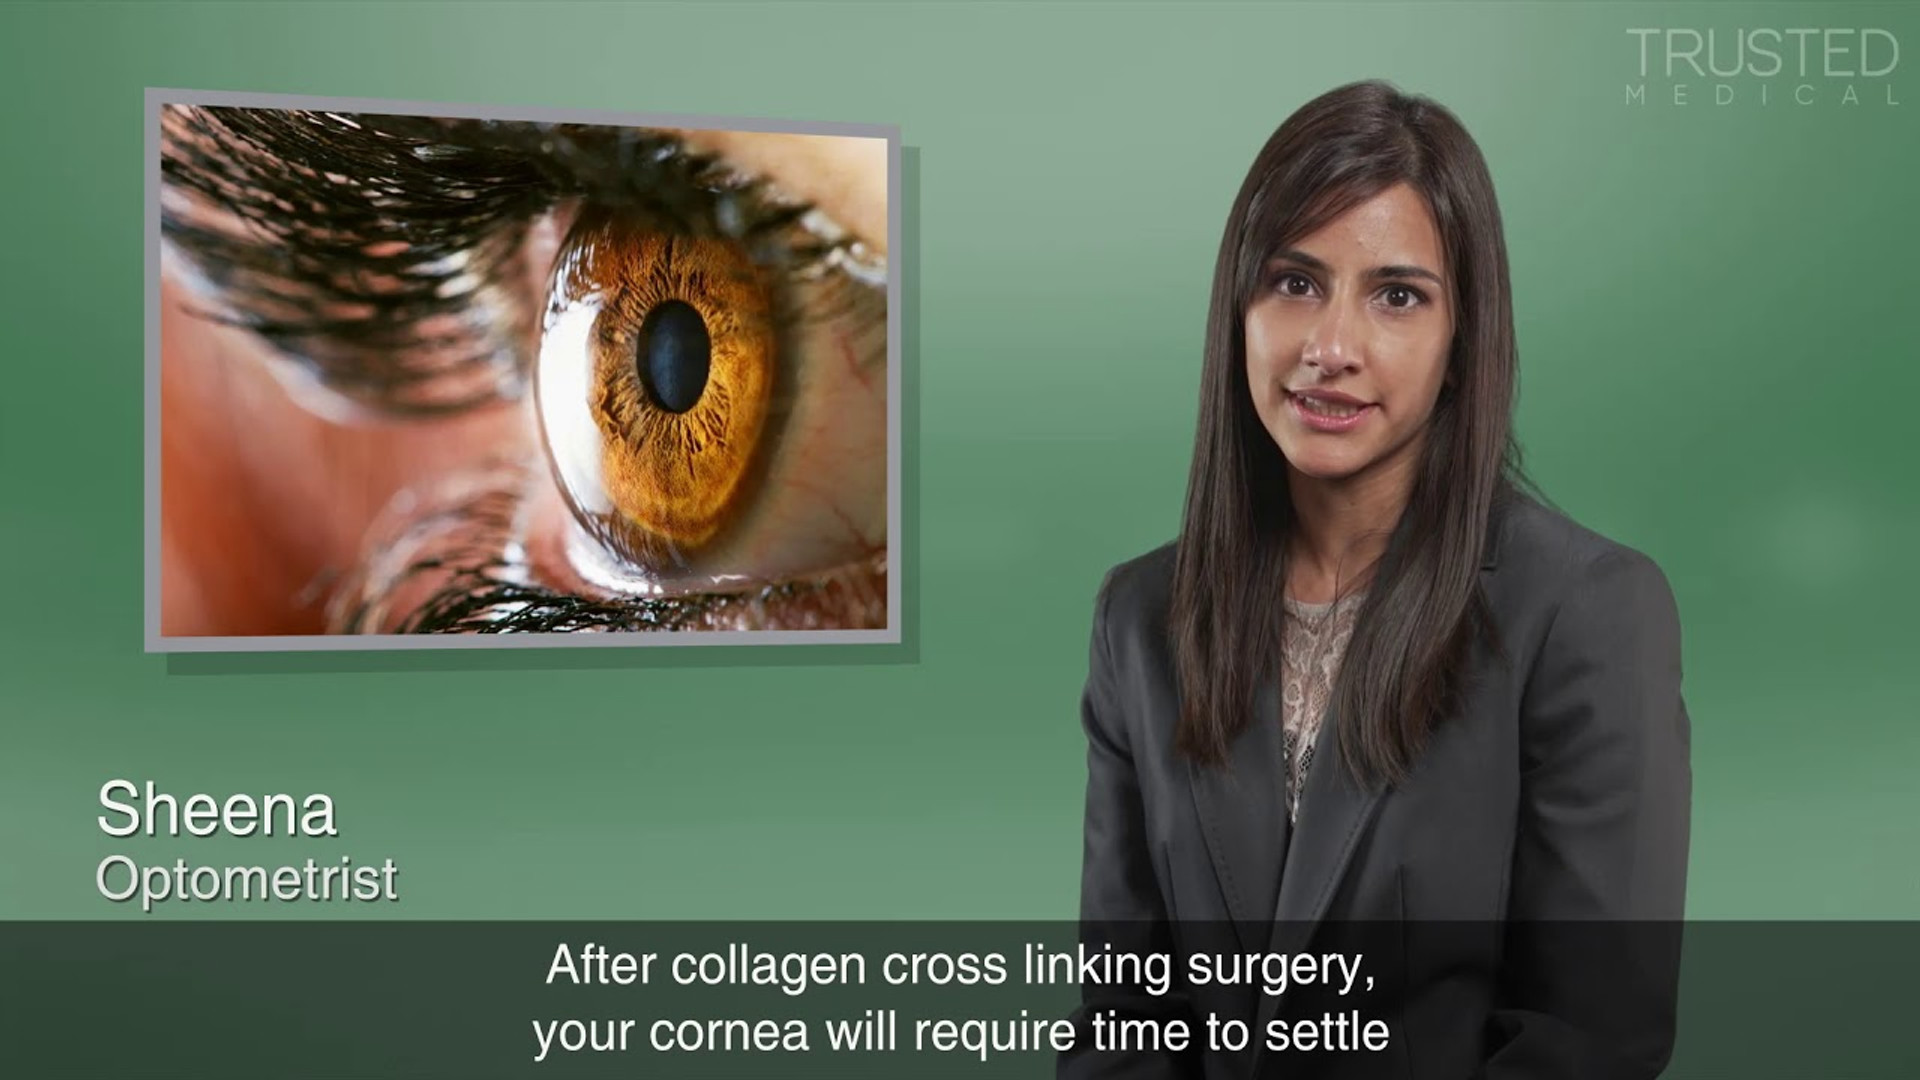 Will I be able to wear glasses or contact lenses after Collagen Cross Linking treatment?